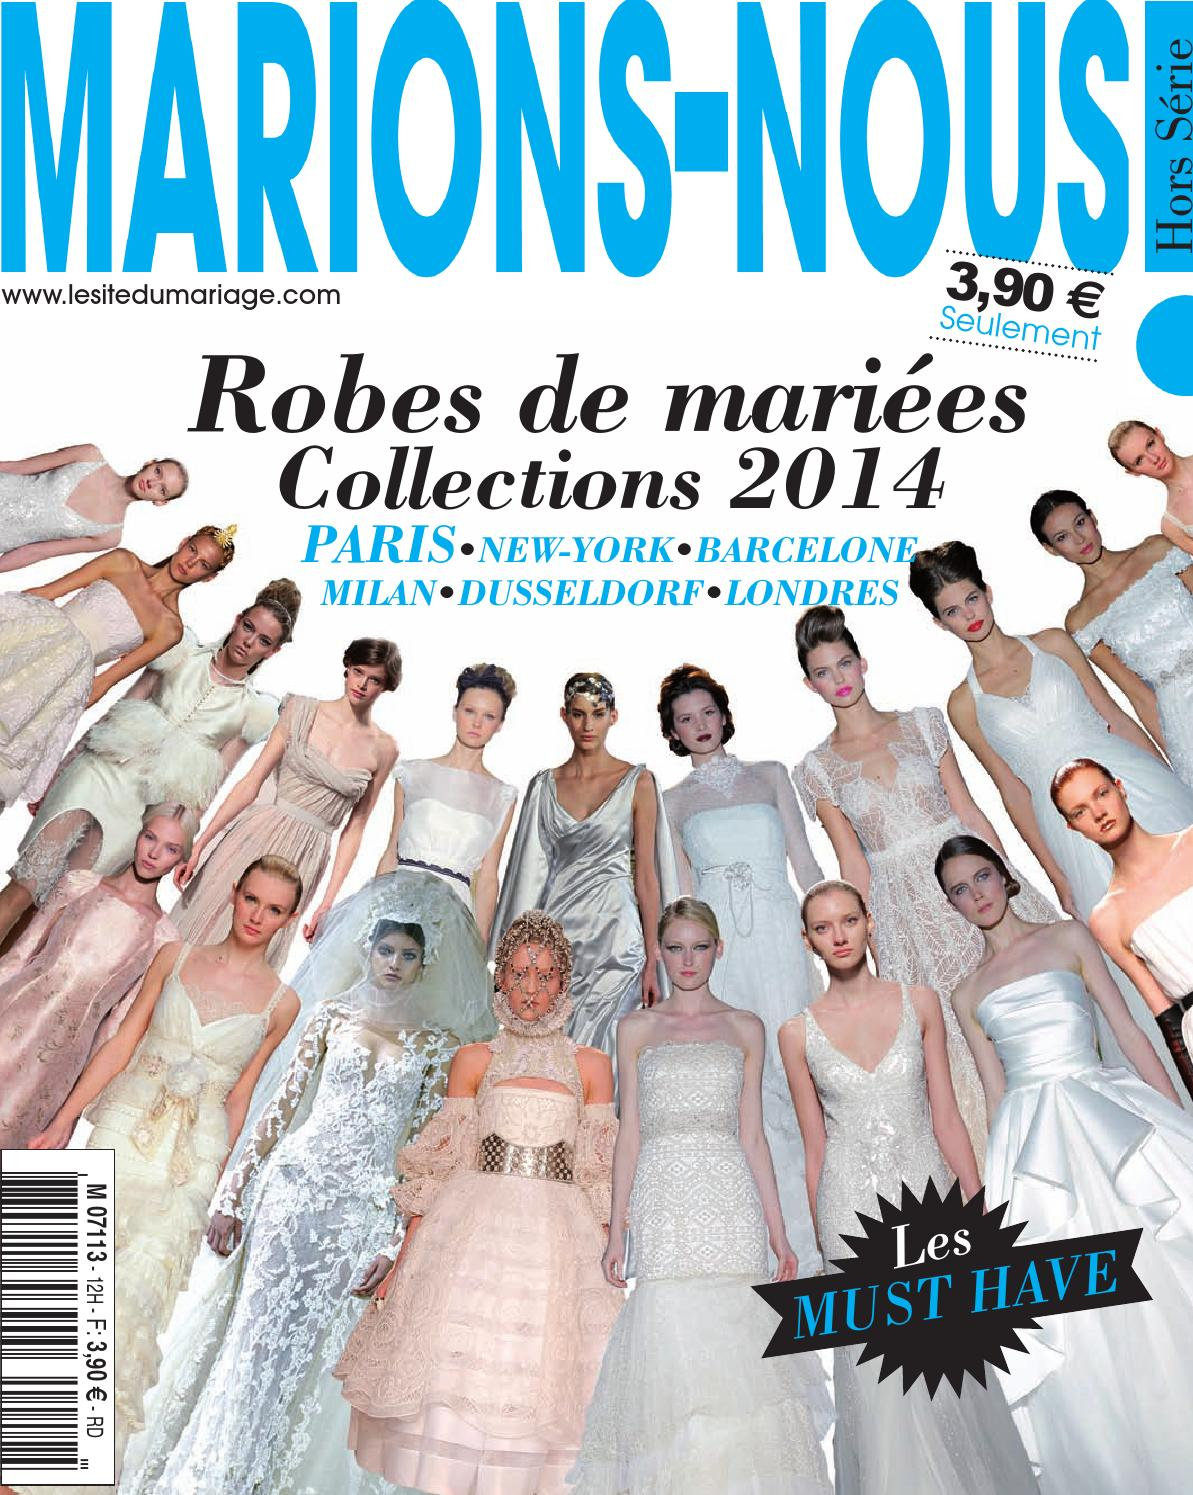 Marions nous collector 2014 by le site du mariage issuu for Hors des robes de mariage rack new york